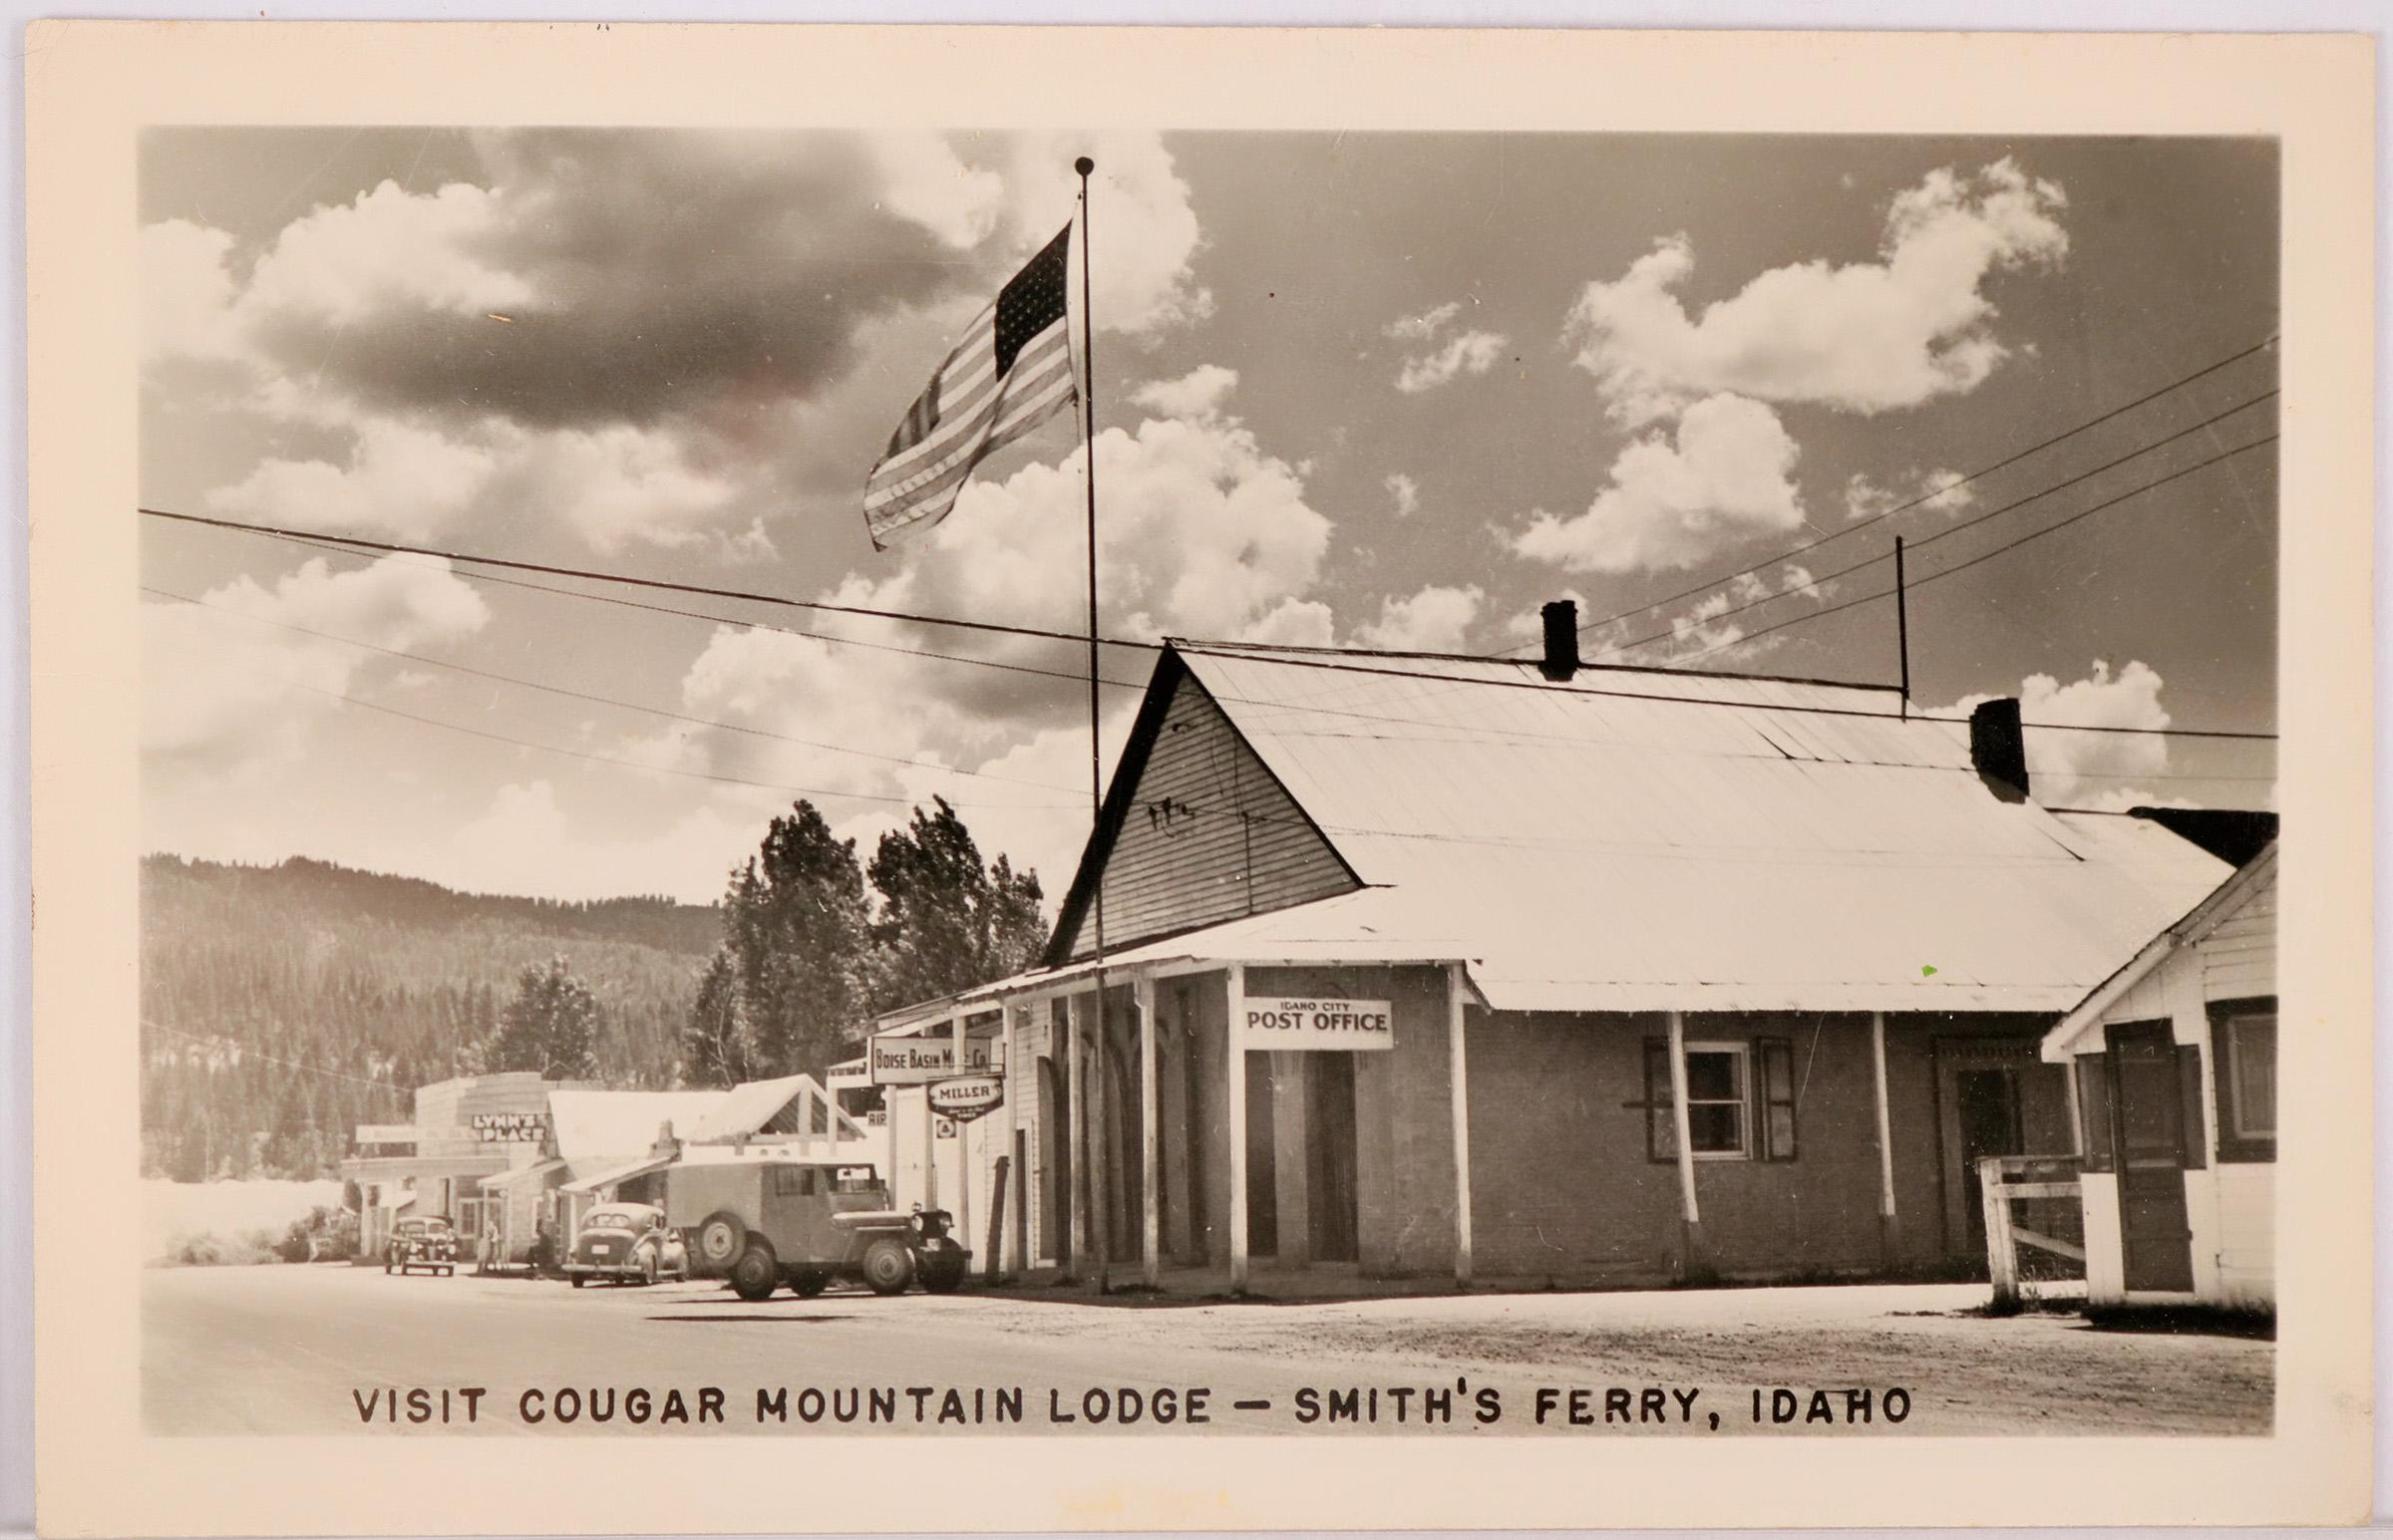 RPC, Smith's Ferry, Idaho, Cougar Mountain Lodge Post Office (119562)